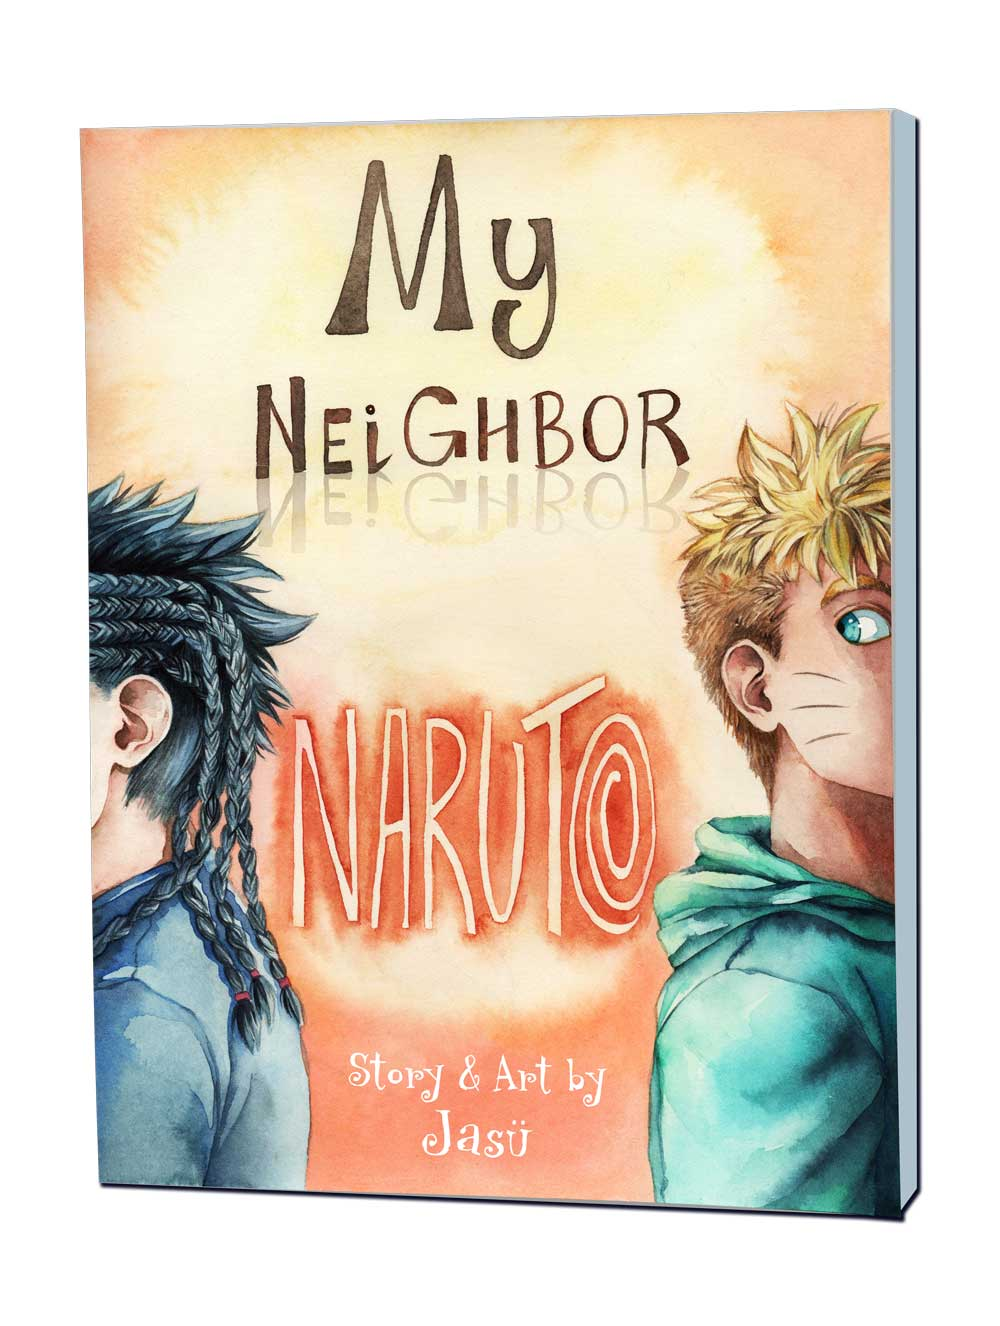 My Neighbor Naruto